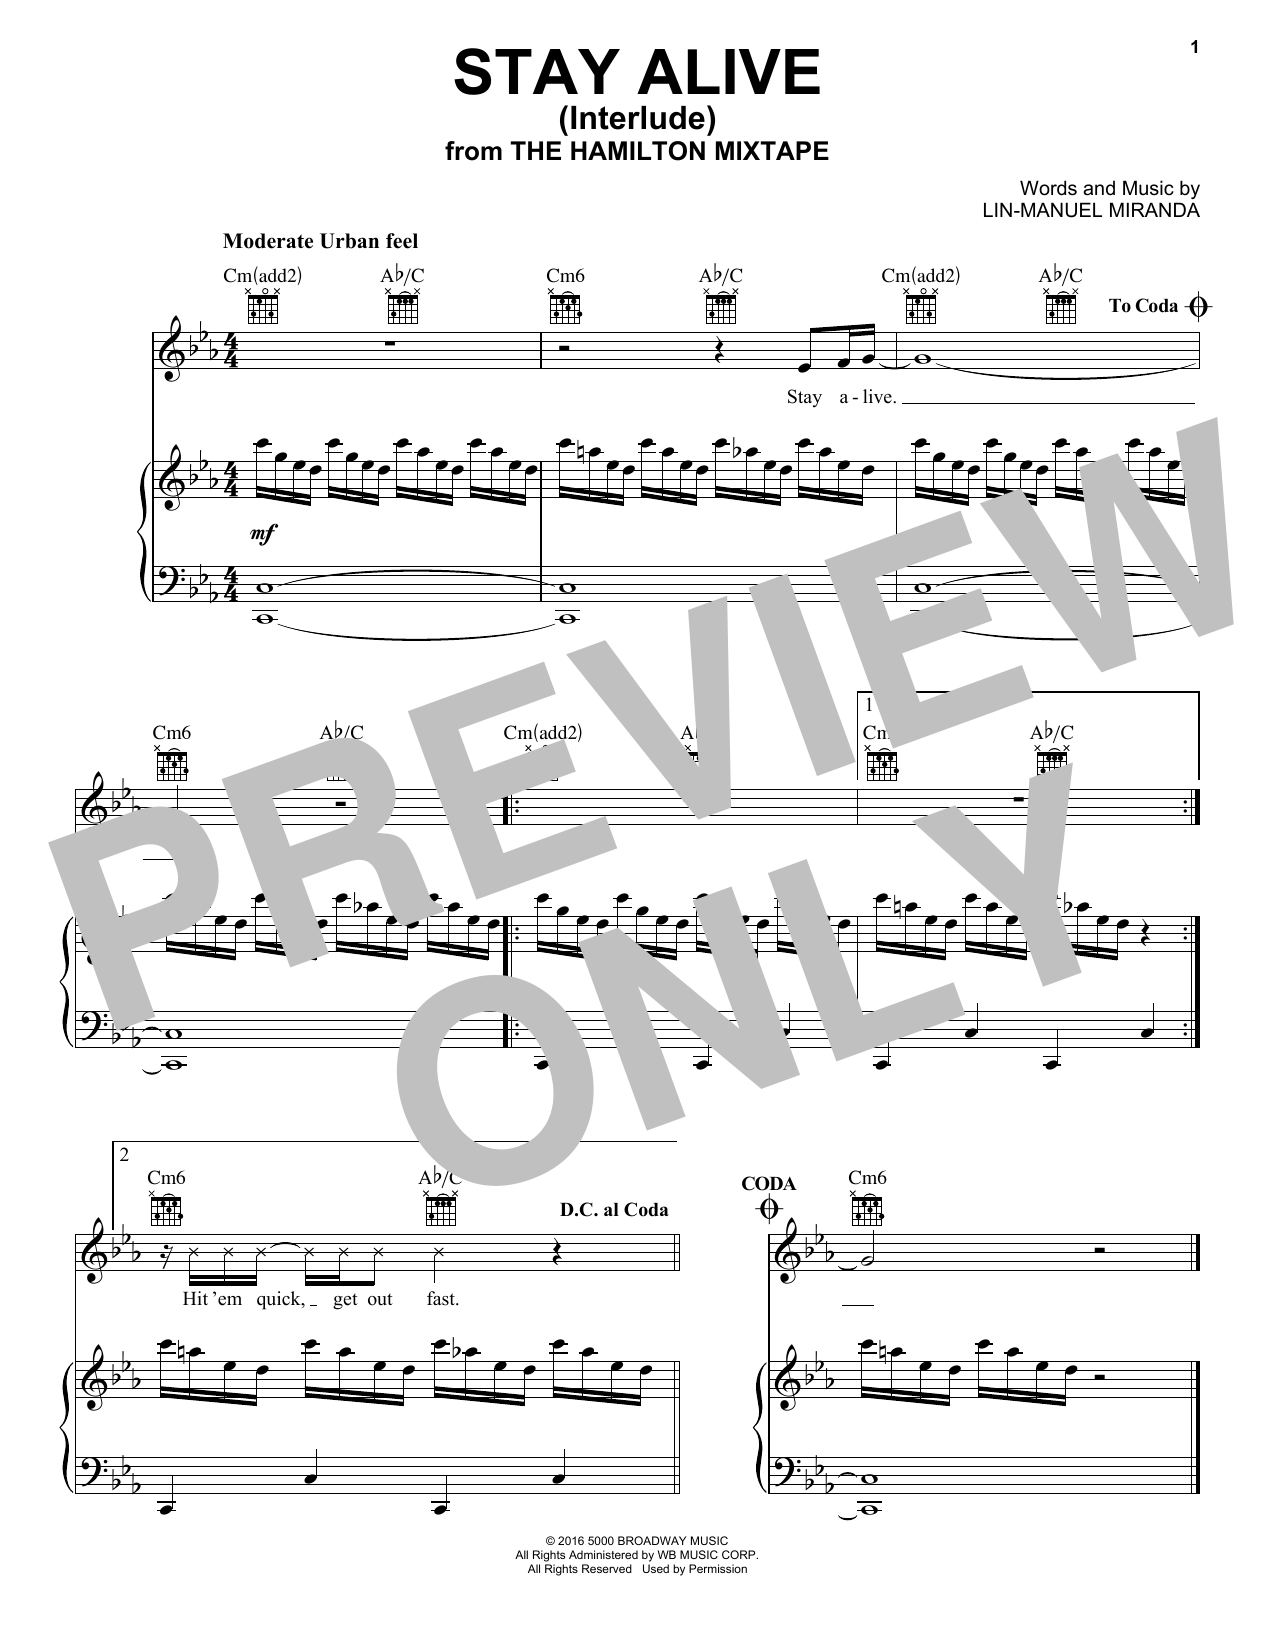 J Period Stro Elliot Stay Alive Interlude Sheet Music Notes